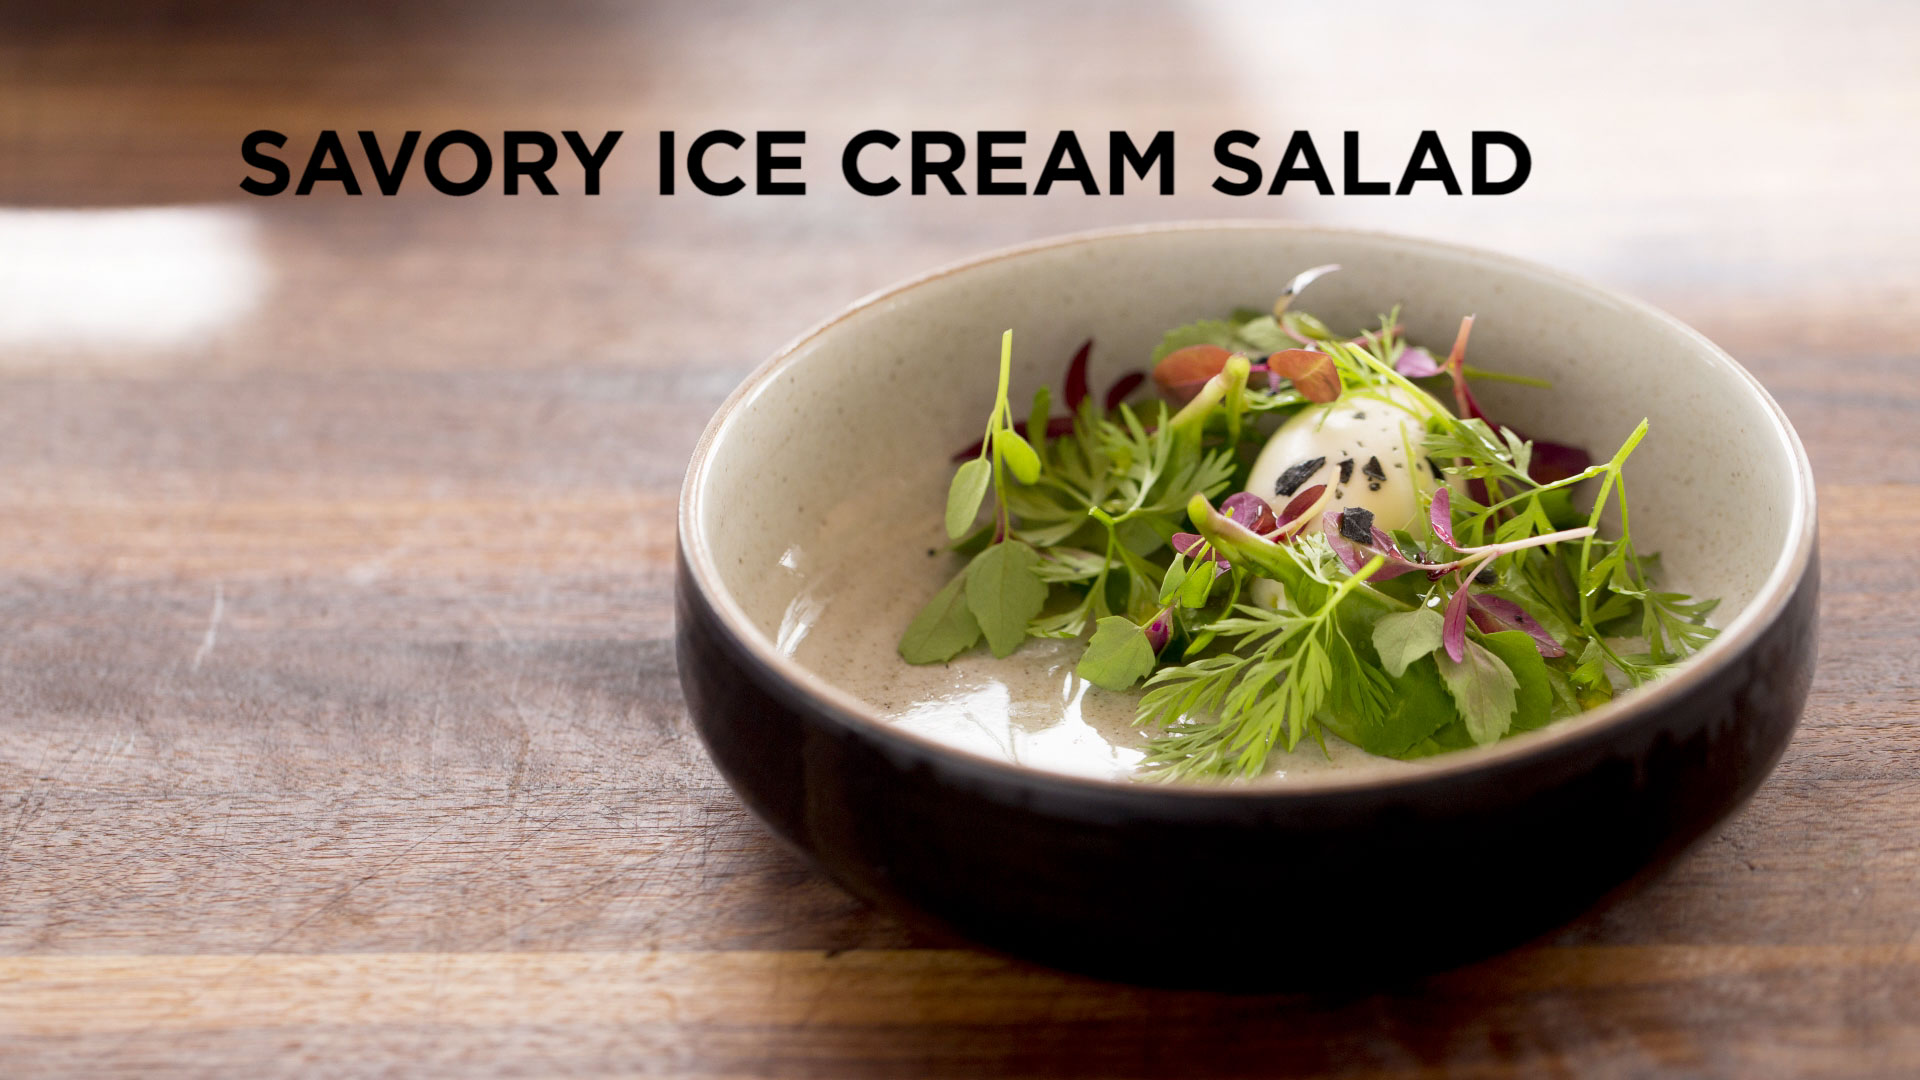 Savory Ice Cream Salad